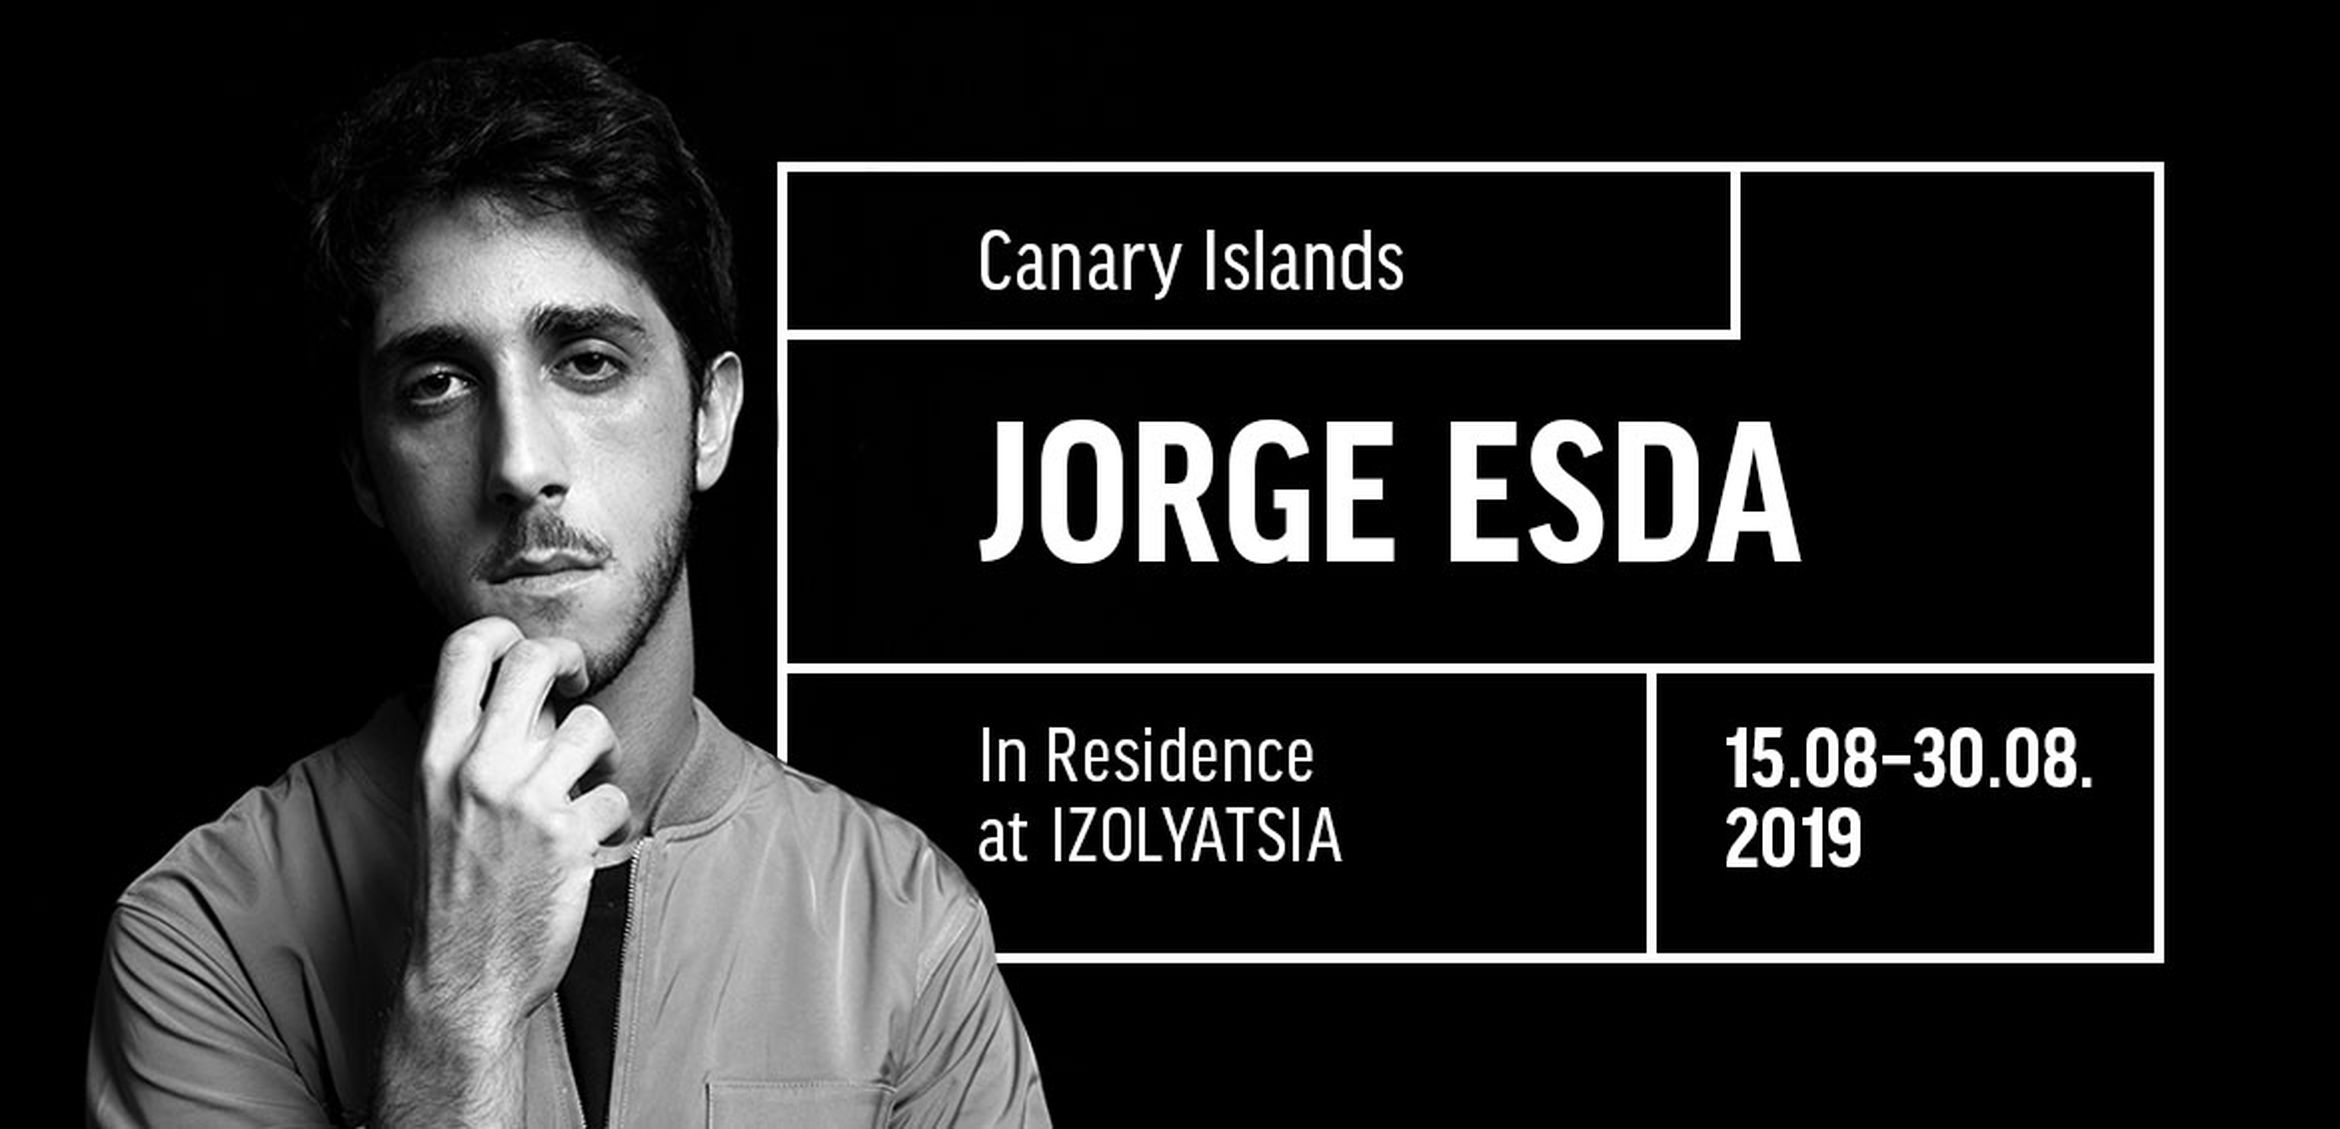 Cultural Manager and Researcher Jorge Esda in residence at IZOLYATSIA